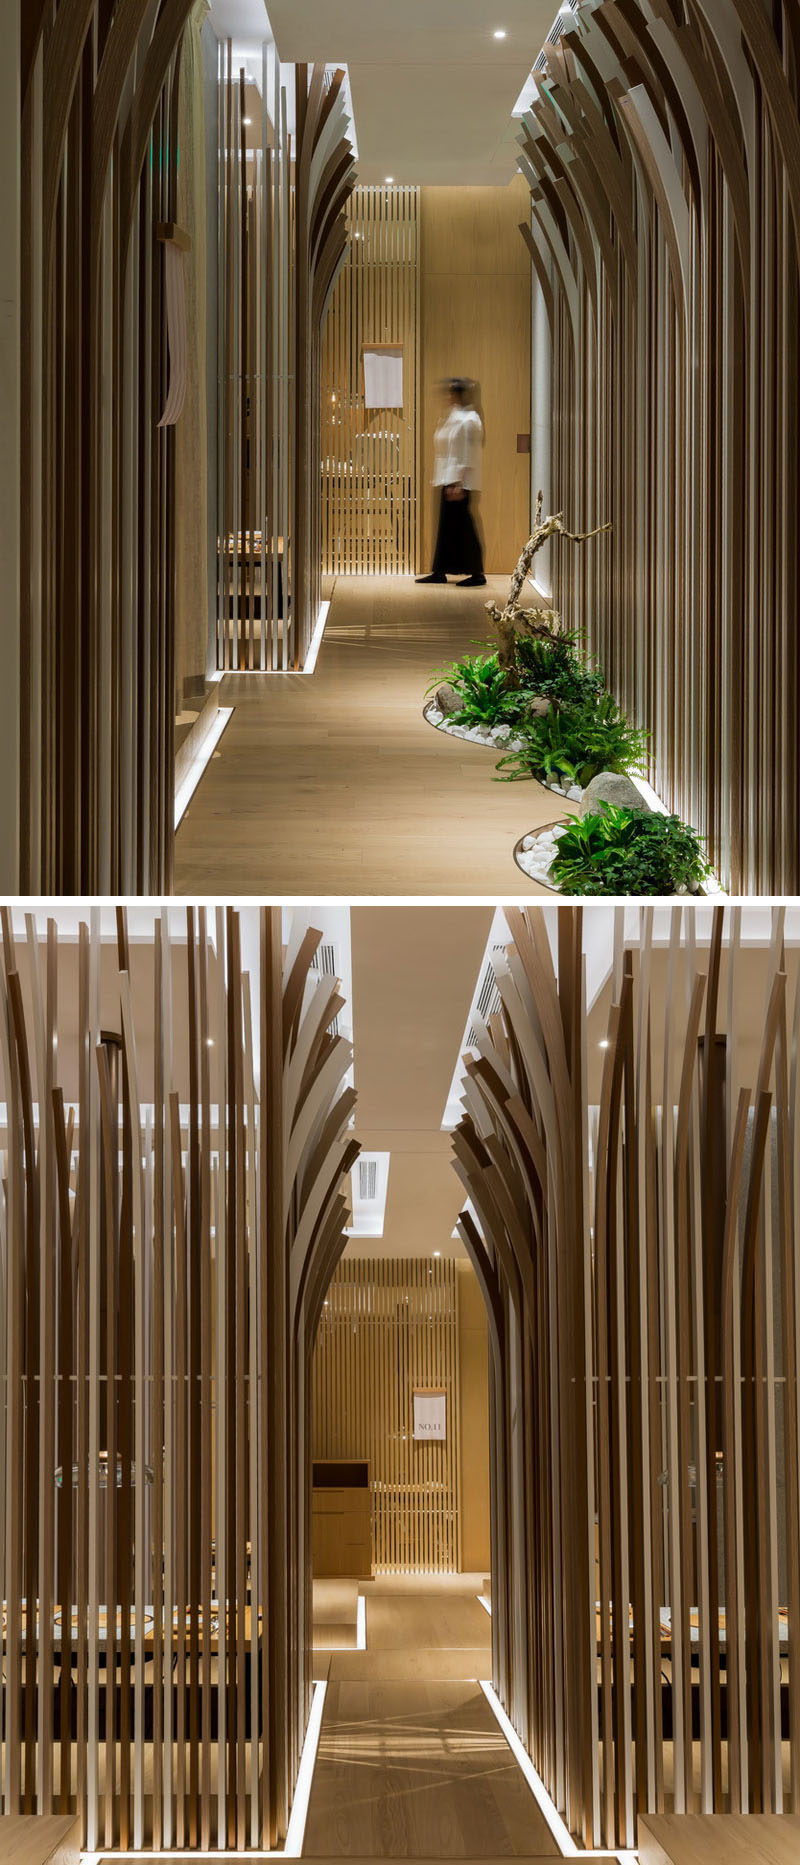 The Tables In This Restaurant Are Surrounded By A Forest Of Curved Wooden Strips